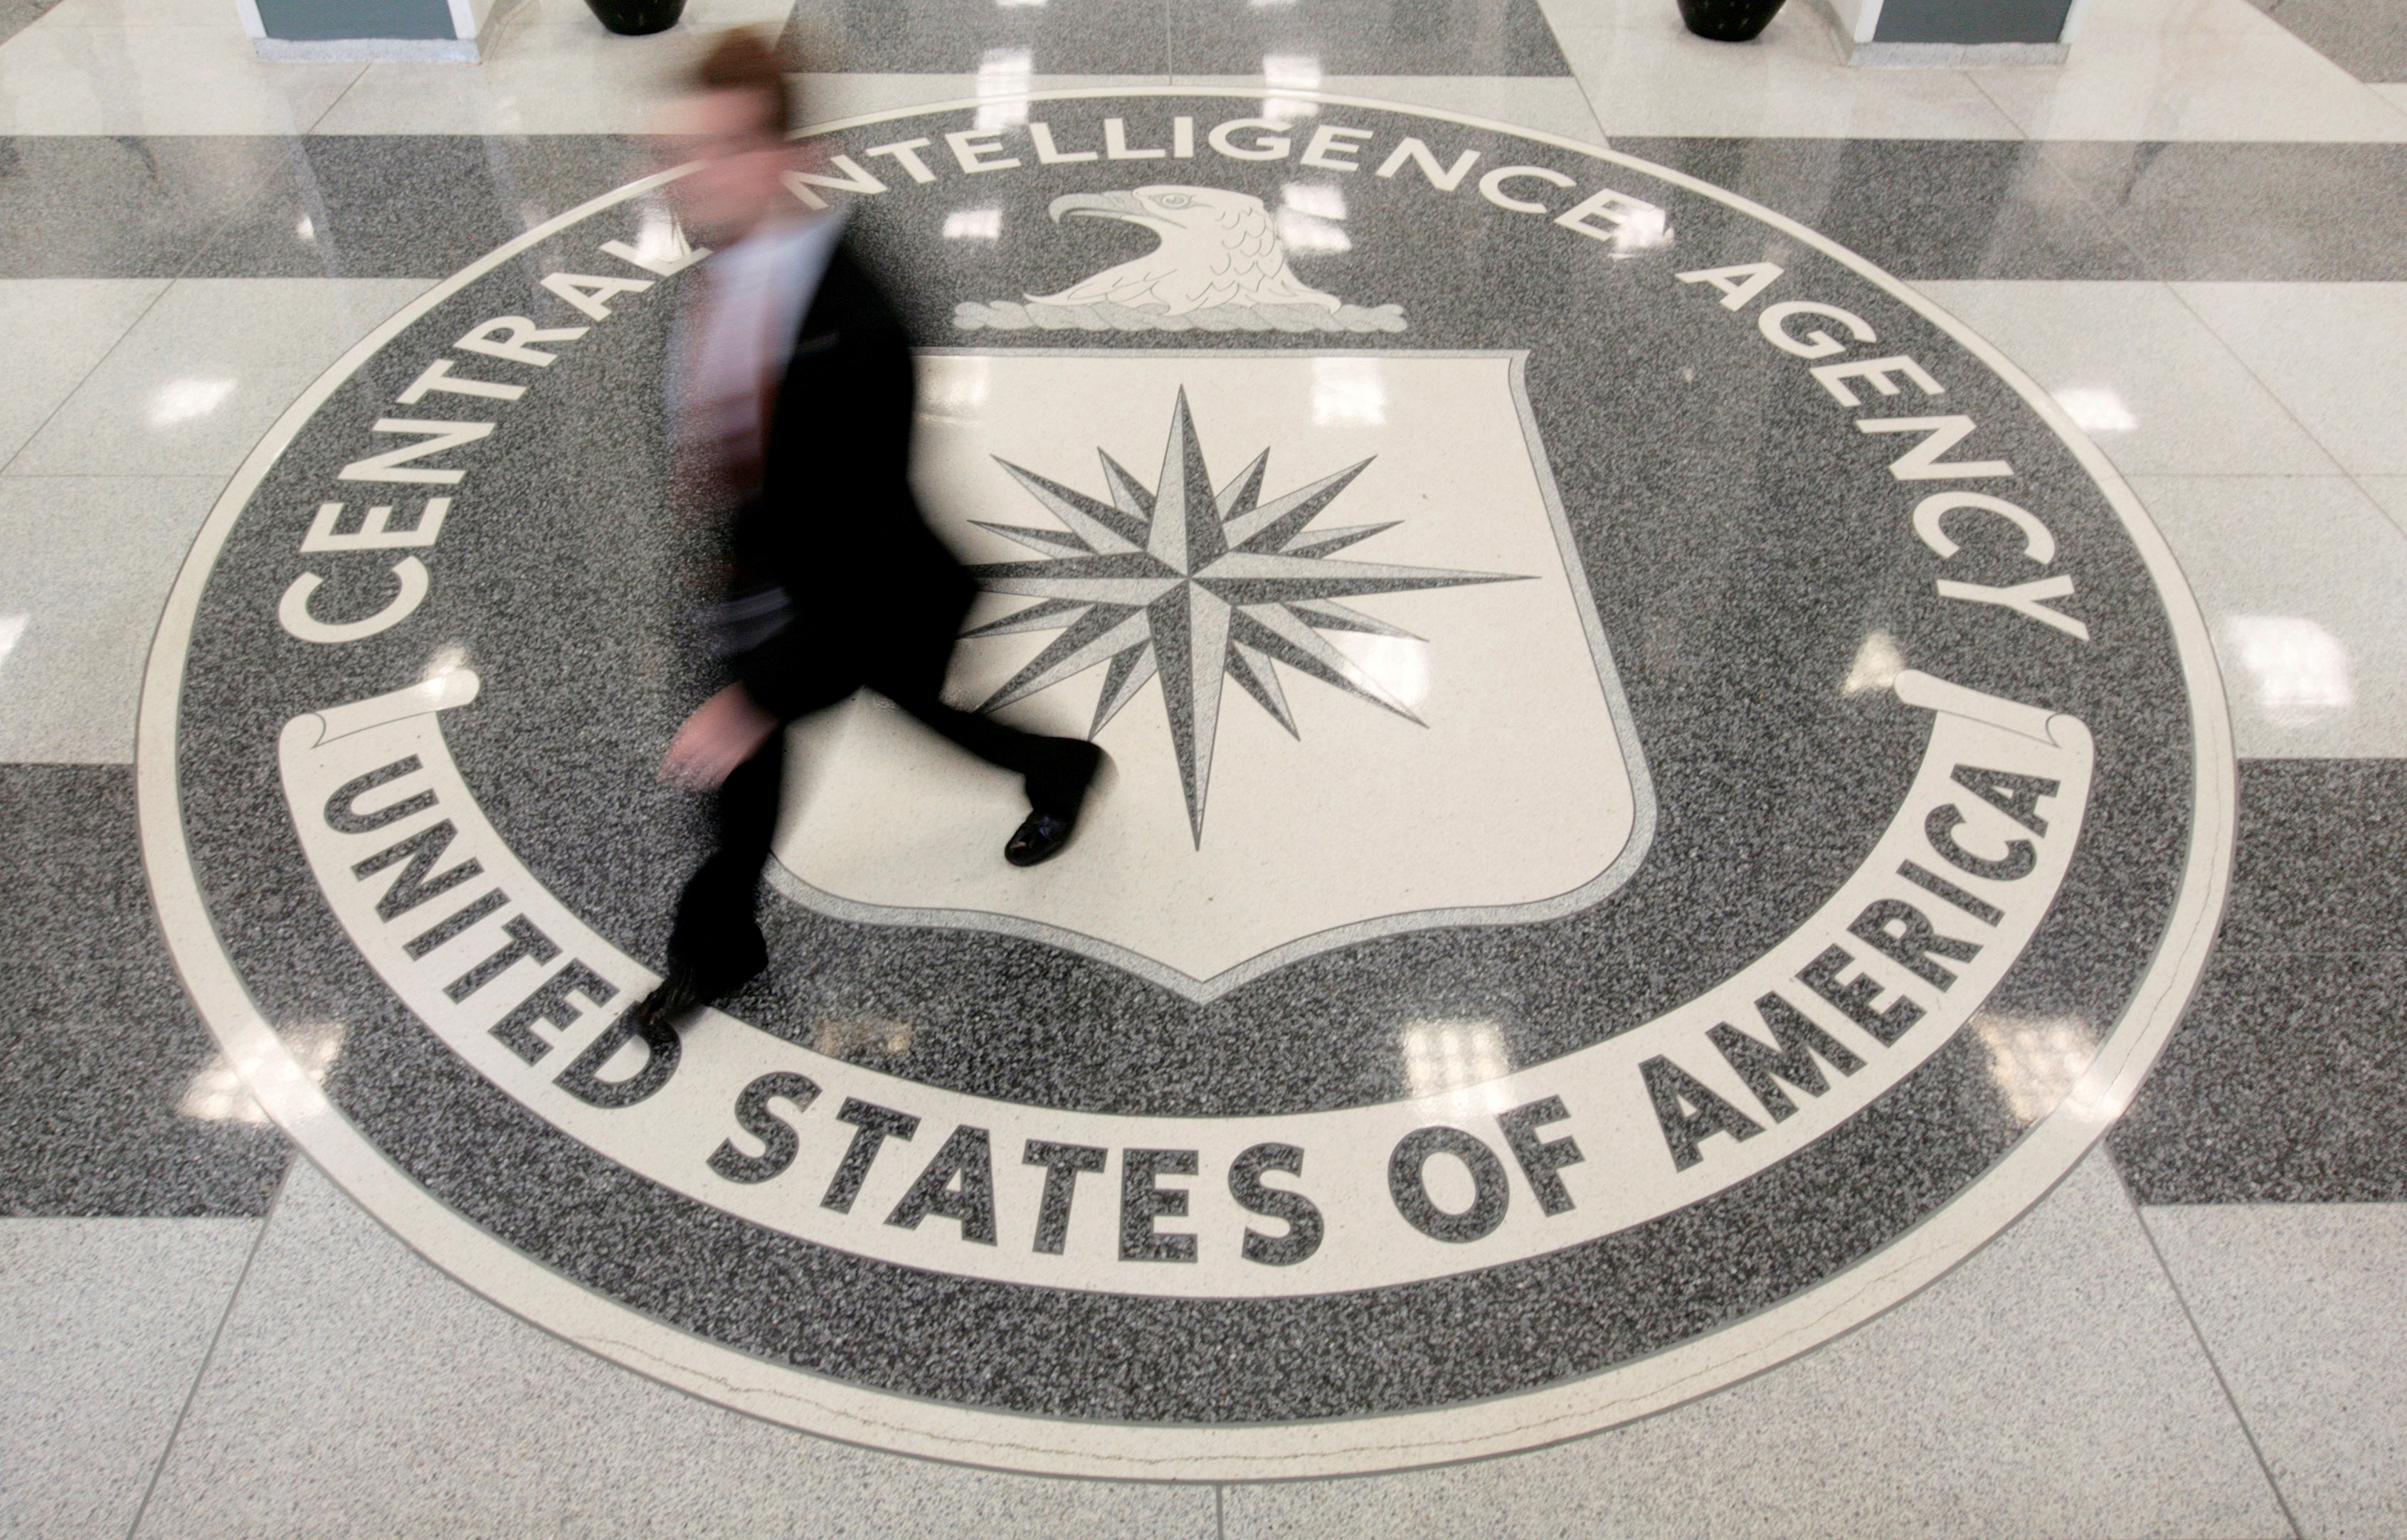 The lobby of the CIA Headquarters Building in Langley, Virginia on Aug. 14, 2008.